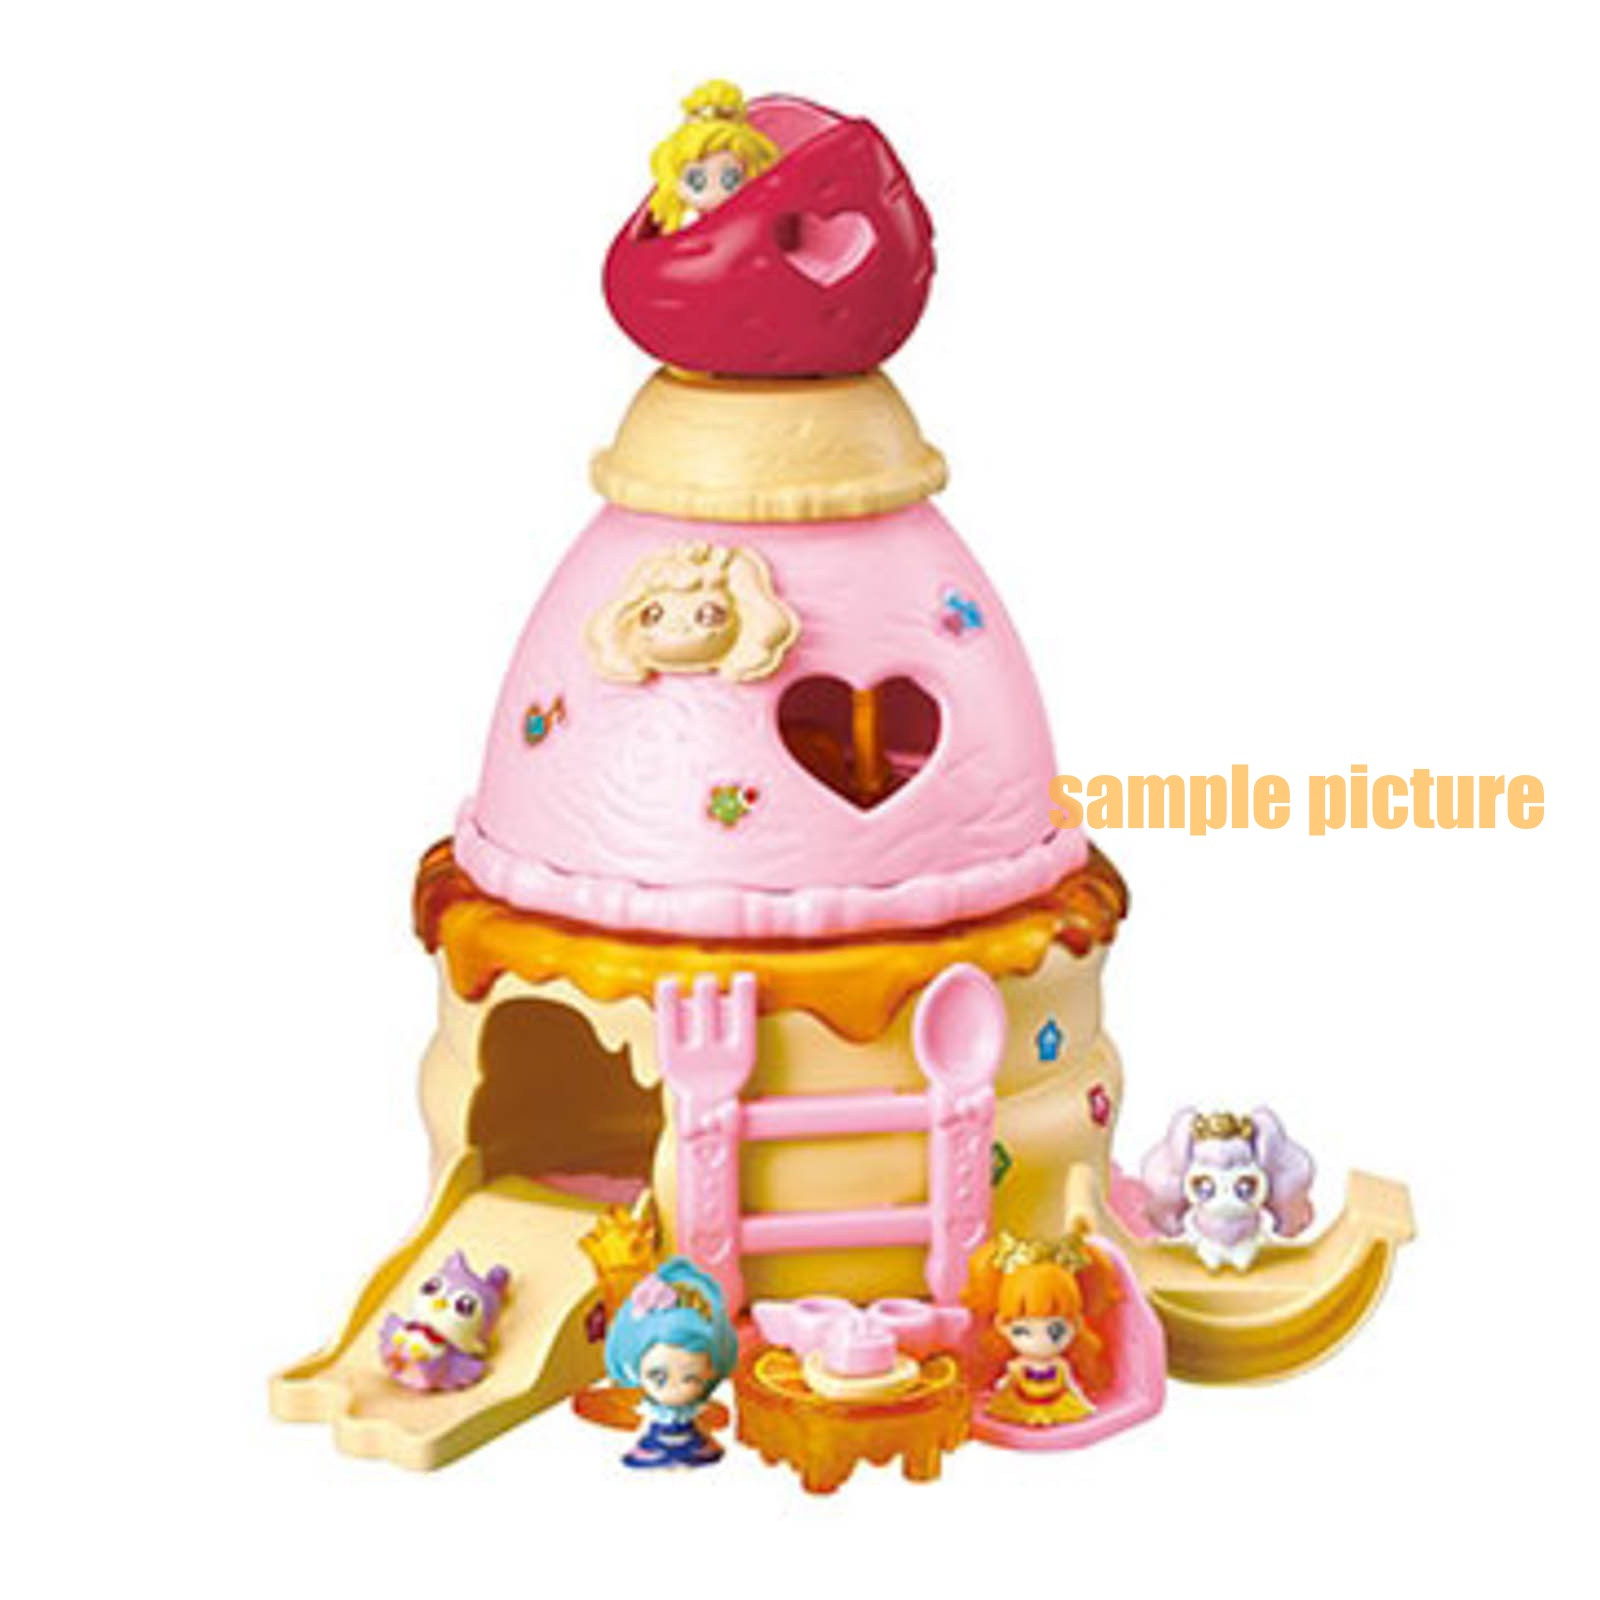 [Complete 5pc set] Go! Princess PreCure PreCure's Pancake House Figure JAPAN ANIME